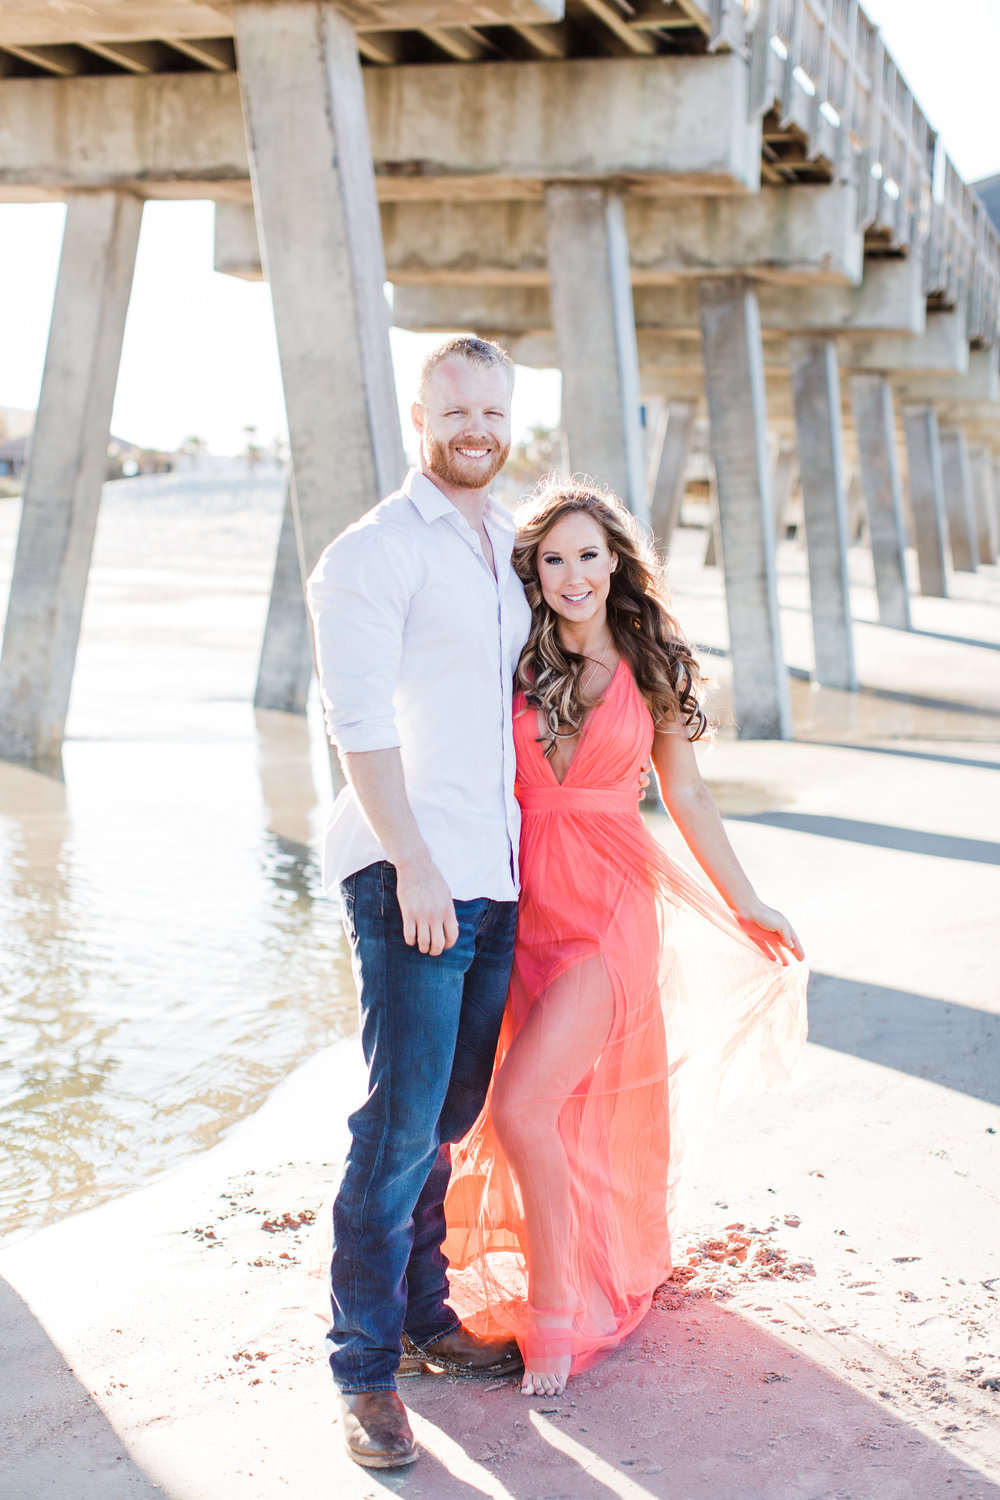 Erin-kevin-apt-b-photography-tybee-island-engagement-photoshoot-savannah-engagement-savannah-wedding-savannah-wedding-photographer-tybee-island-wedding-beach-engagement-8.jpg